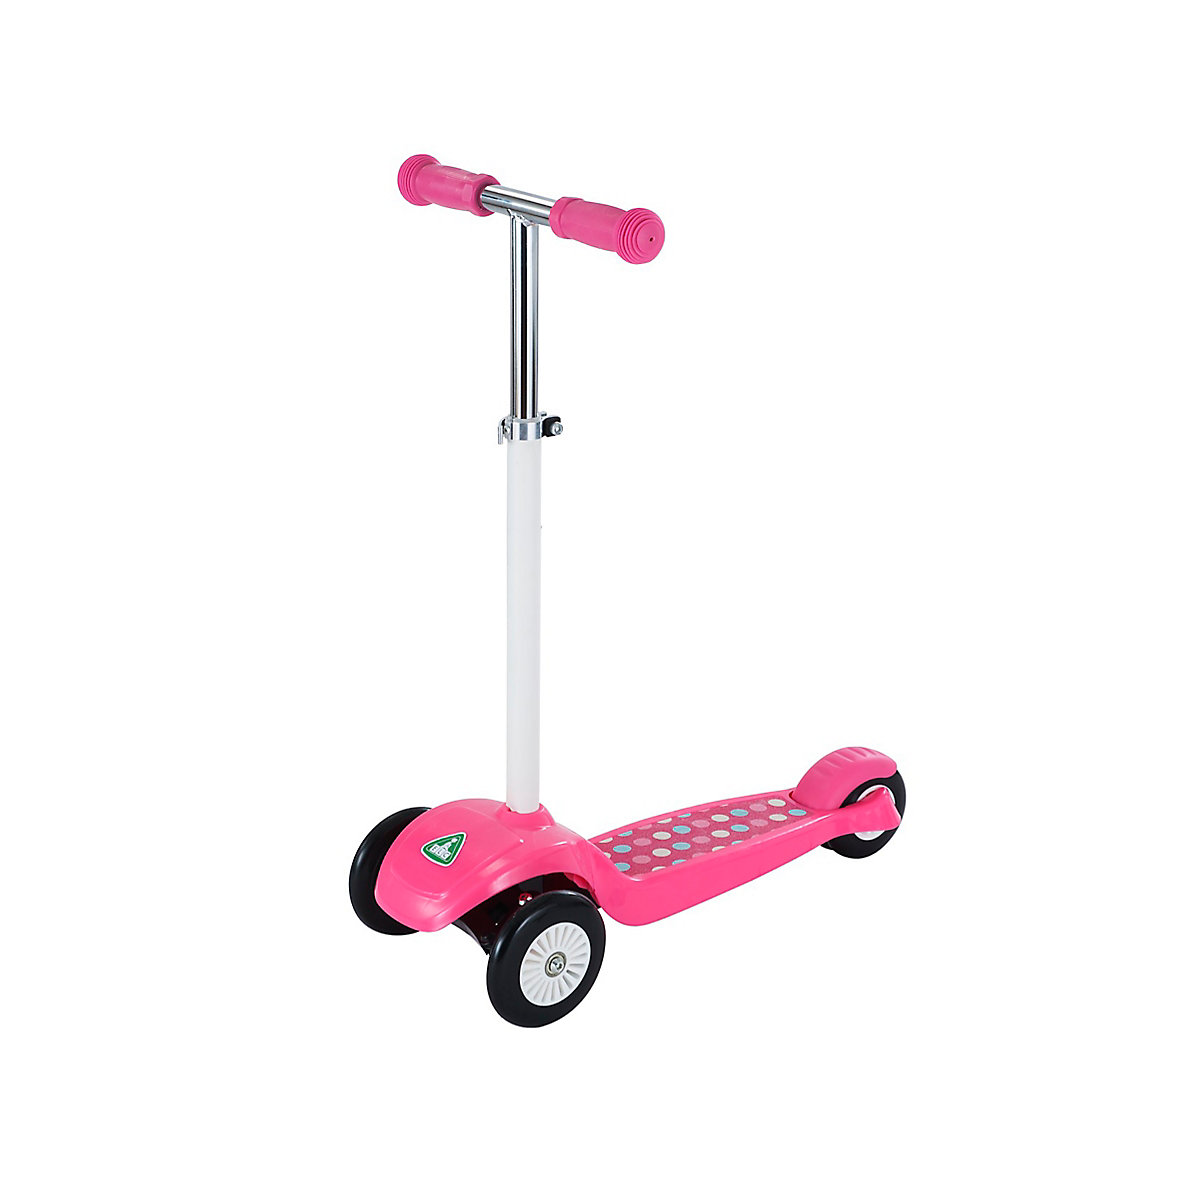 New ELC Boys and Girls Spotty Scooter Toy From 3 years - Spotty Gifts